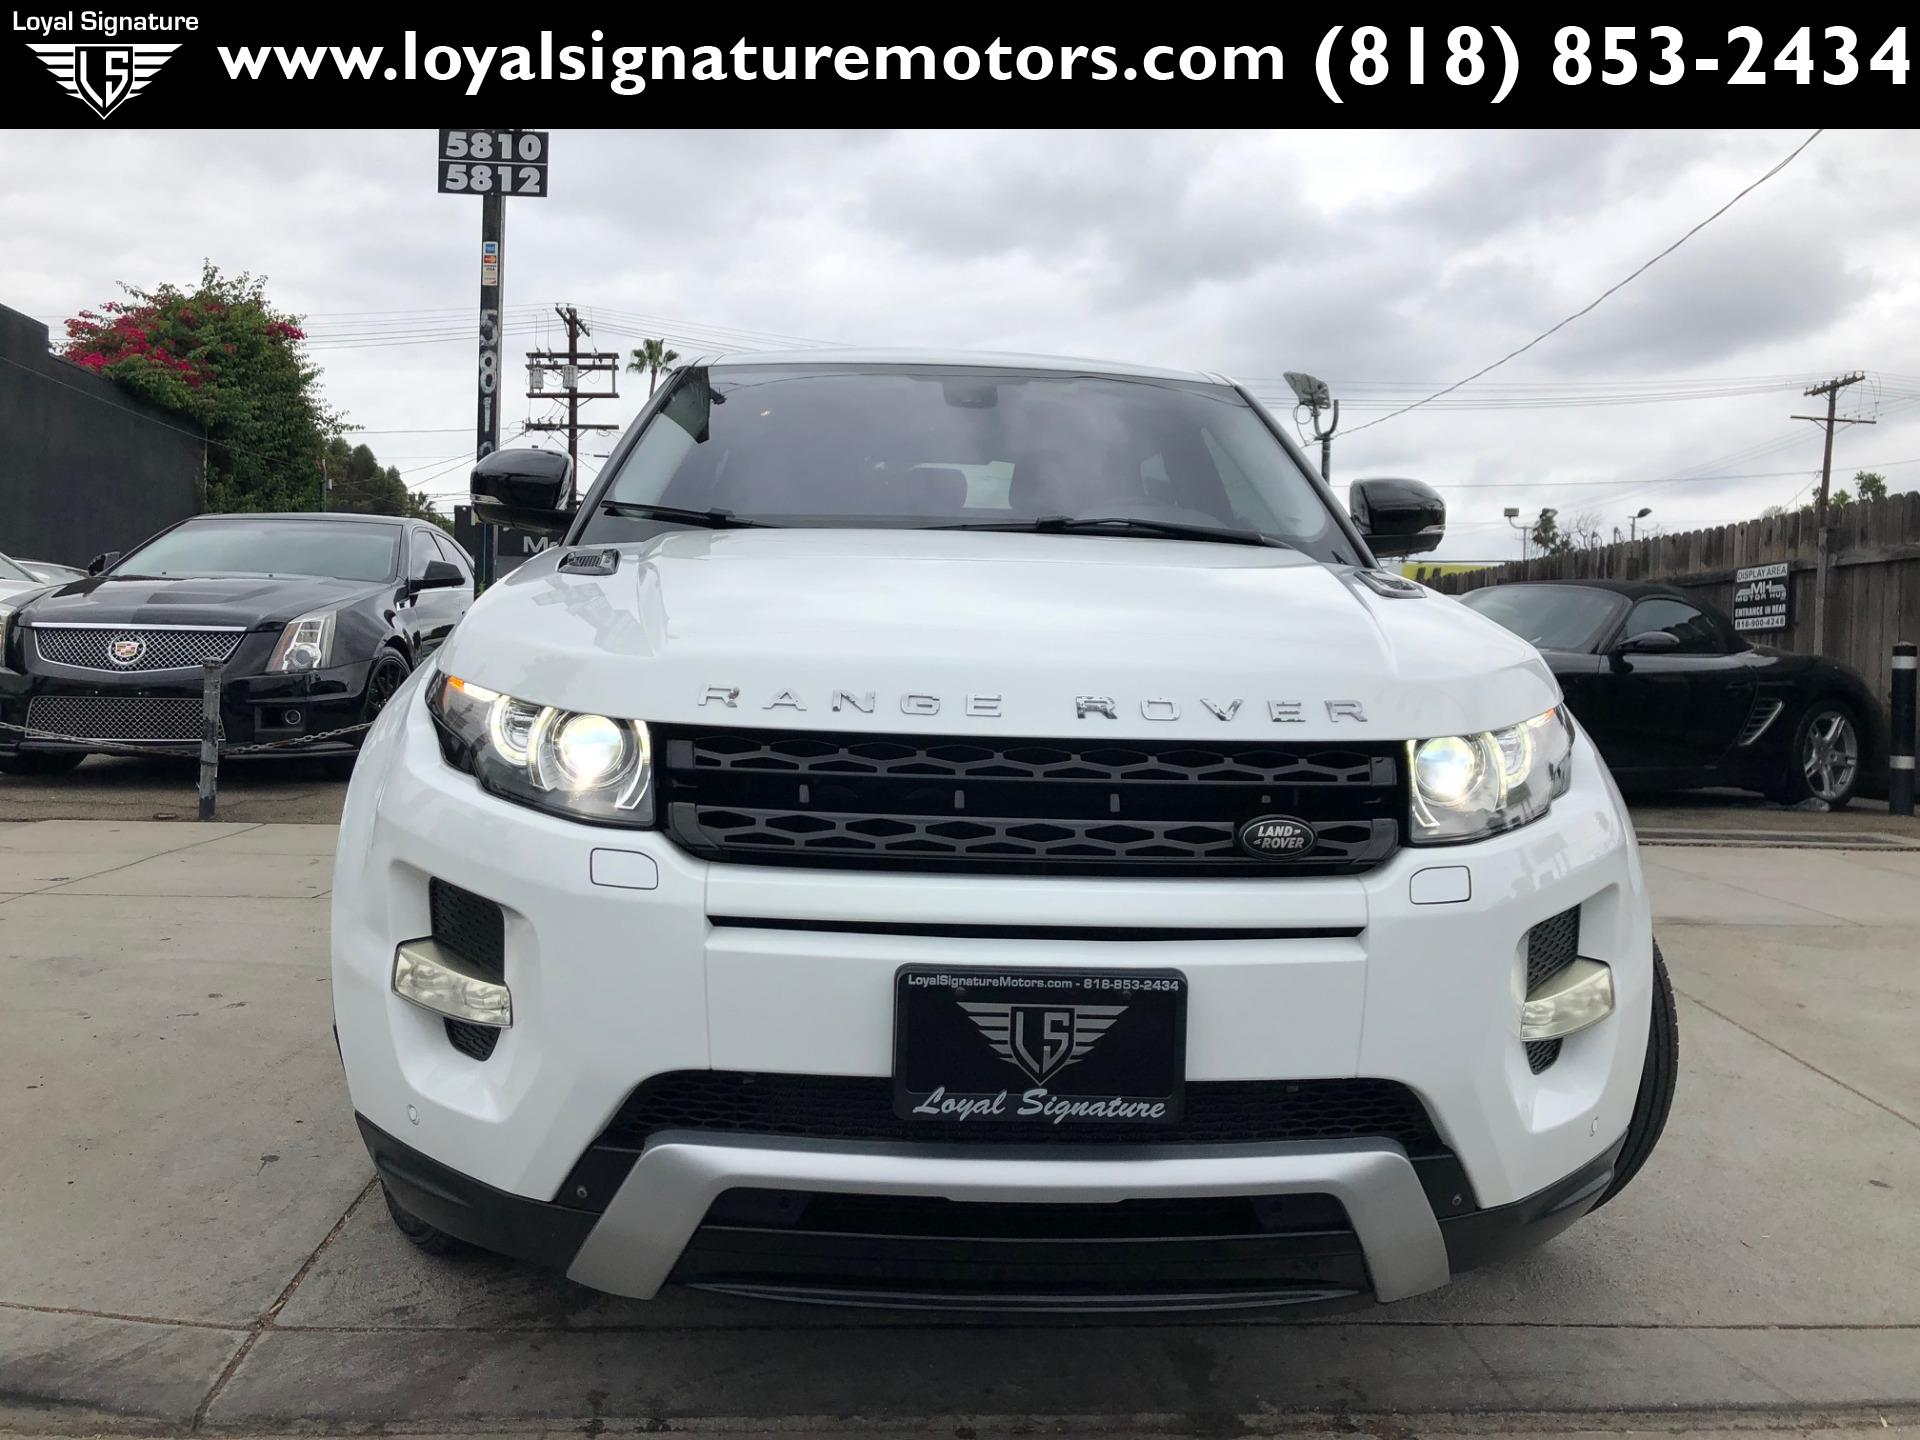 Used-2013-Land-Rover-Range-Rover-Evoque-Coupe-Dynamic